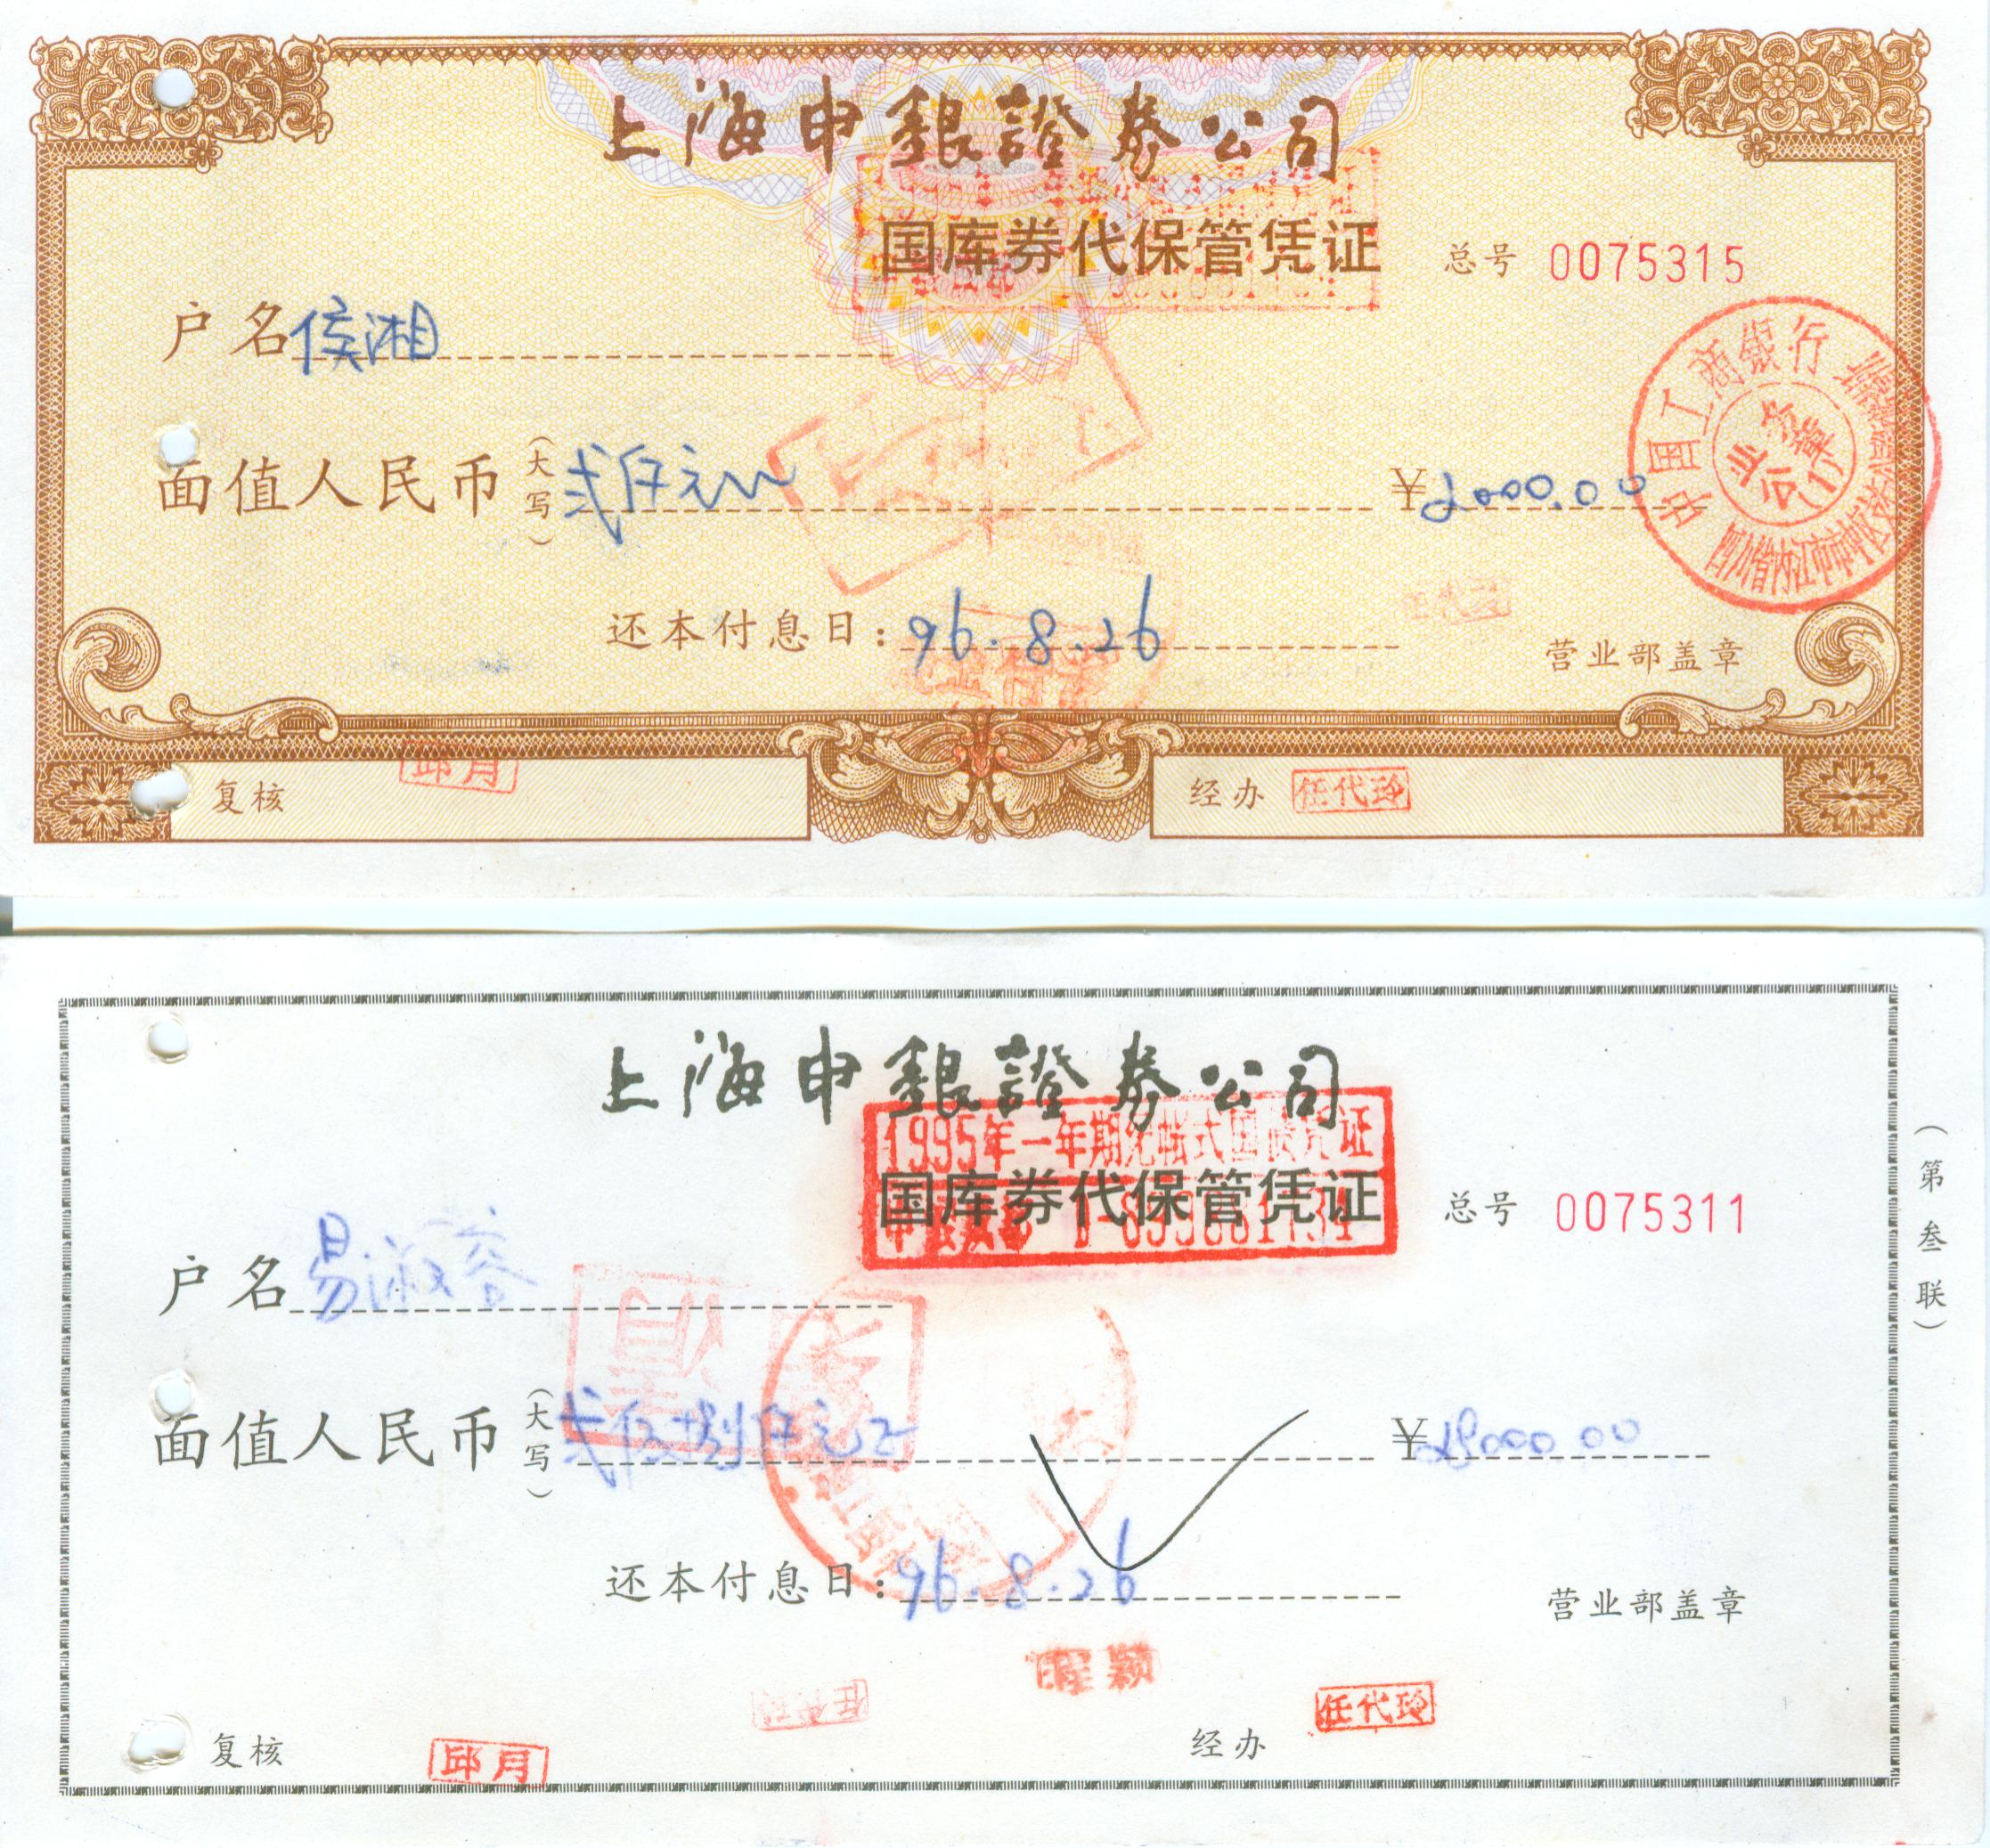 B7290, Book-Entry Treasury Bond of China, 1990's